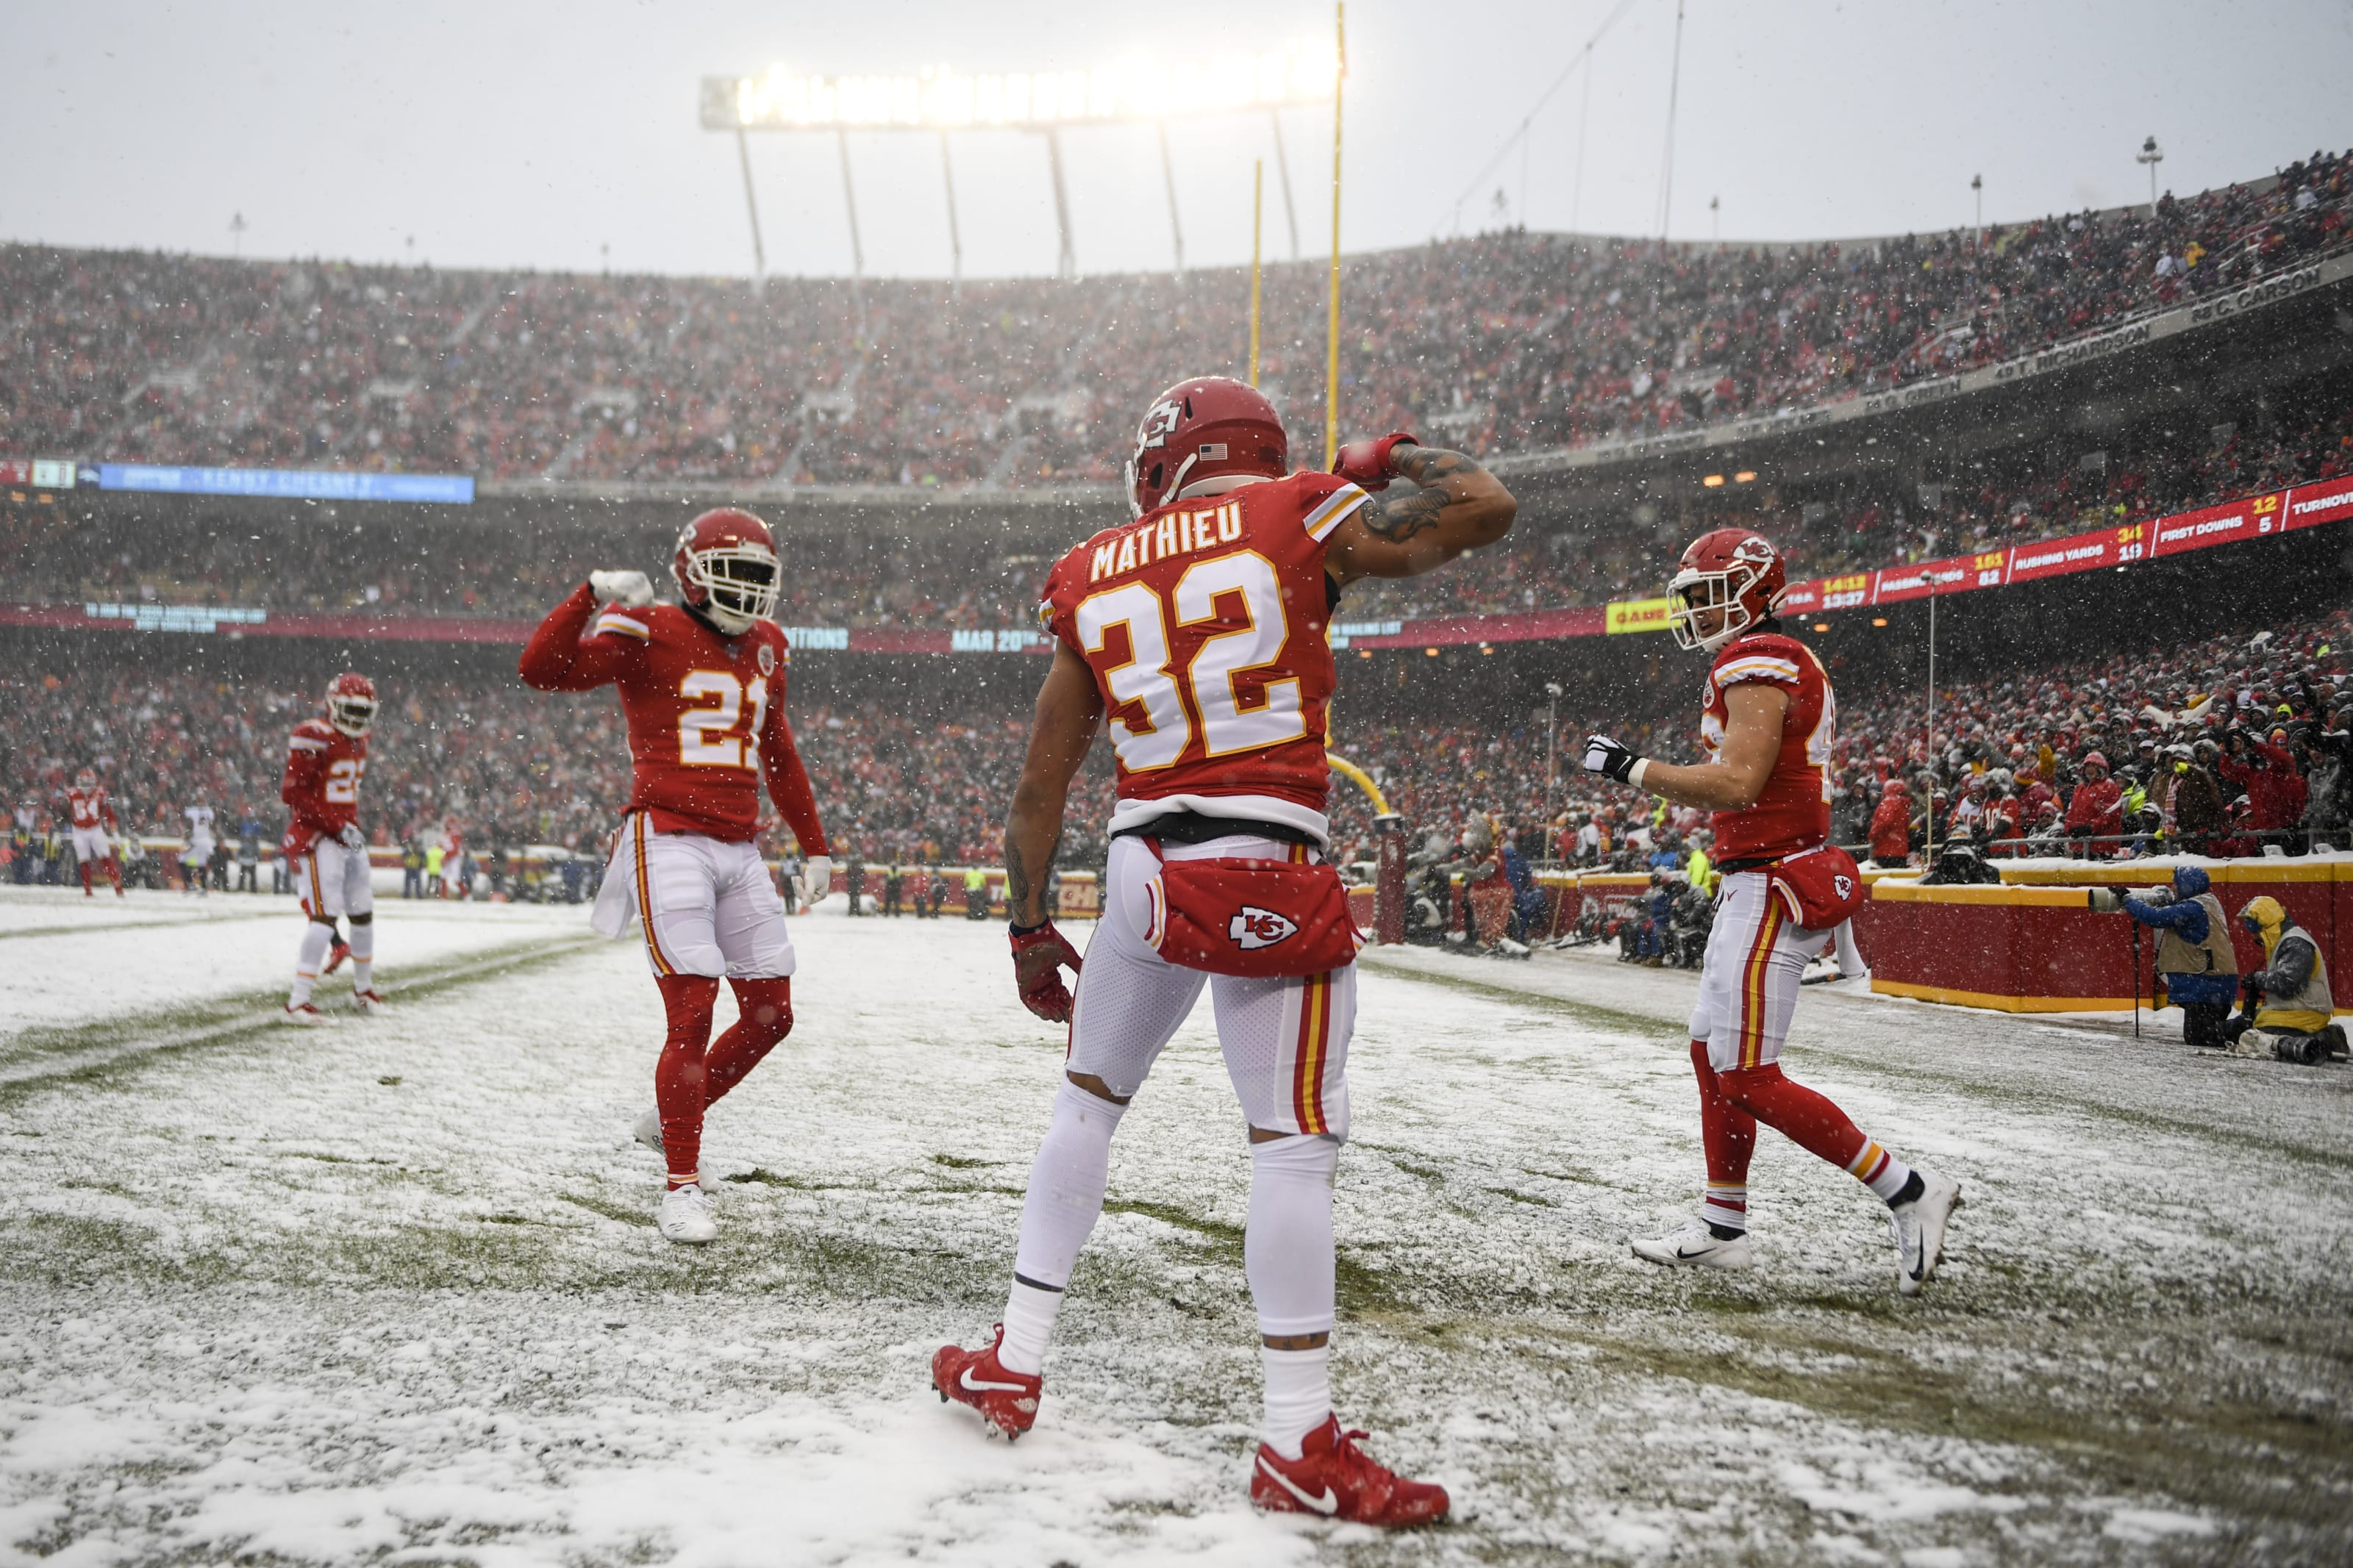 Kc Chiefs 2019 Is Best Chance At Super Bowl Run In Long Time